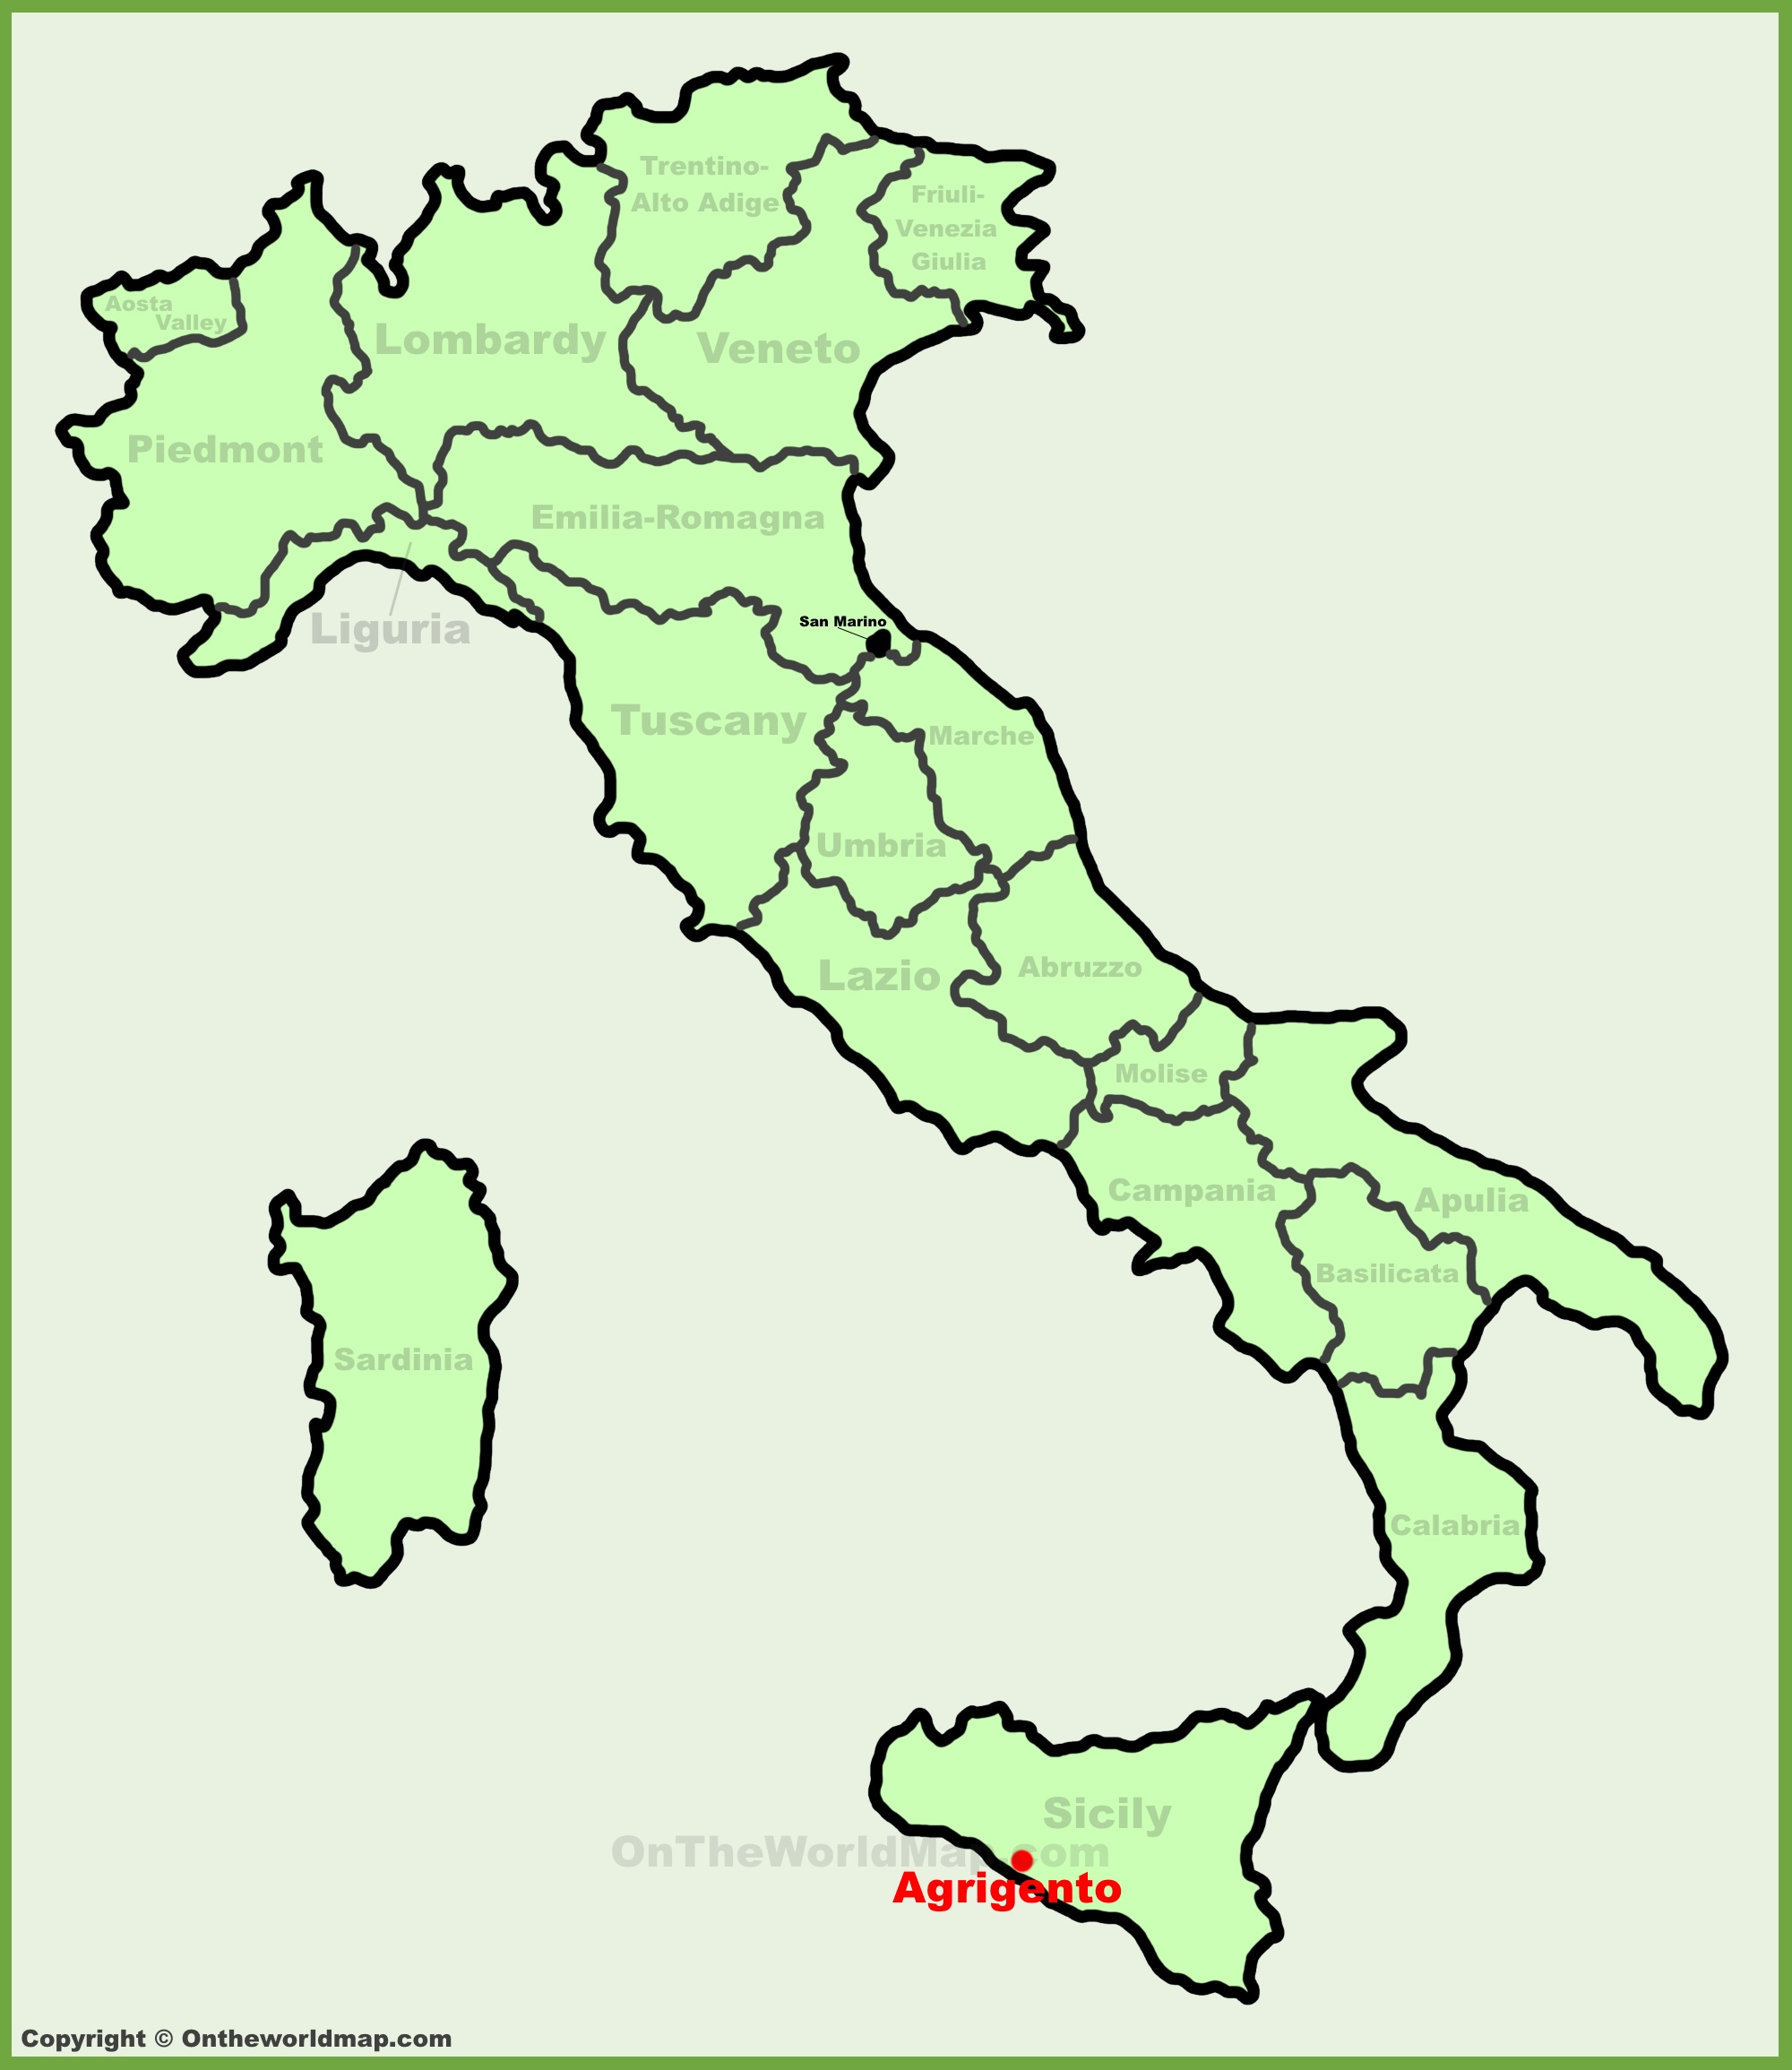 Agrigento location on the Italy map